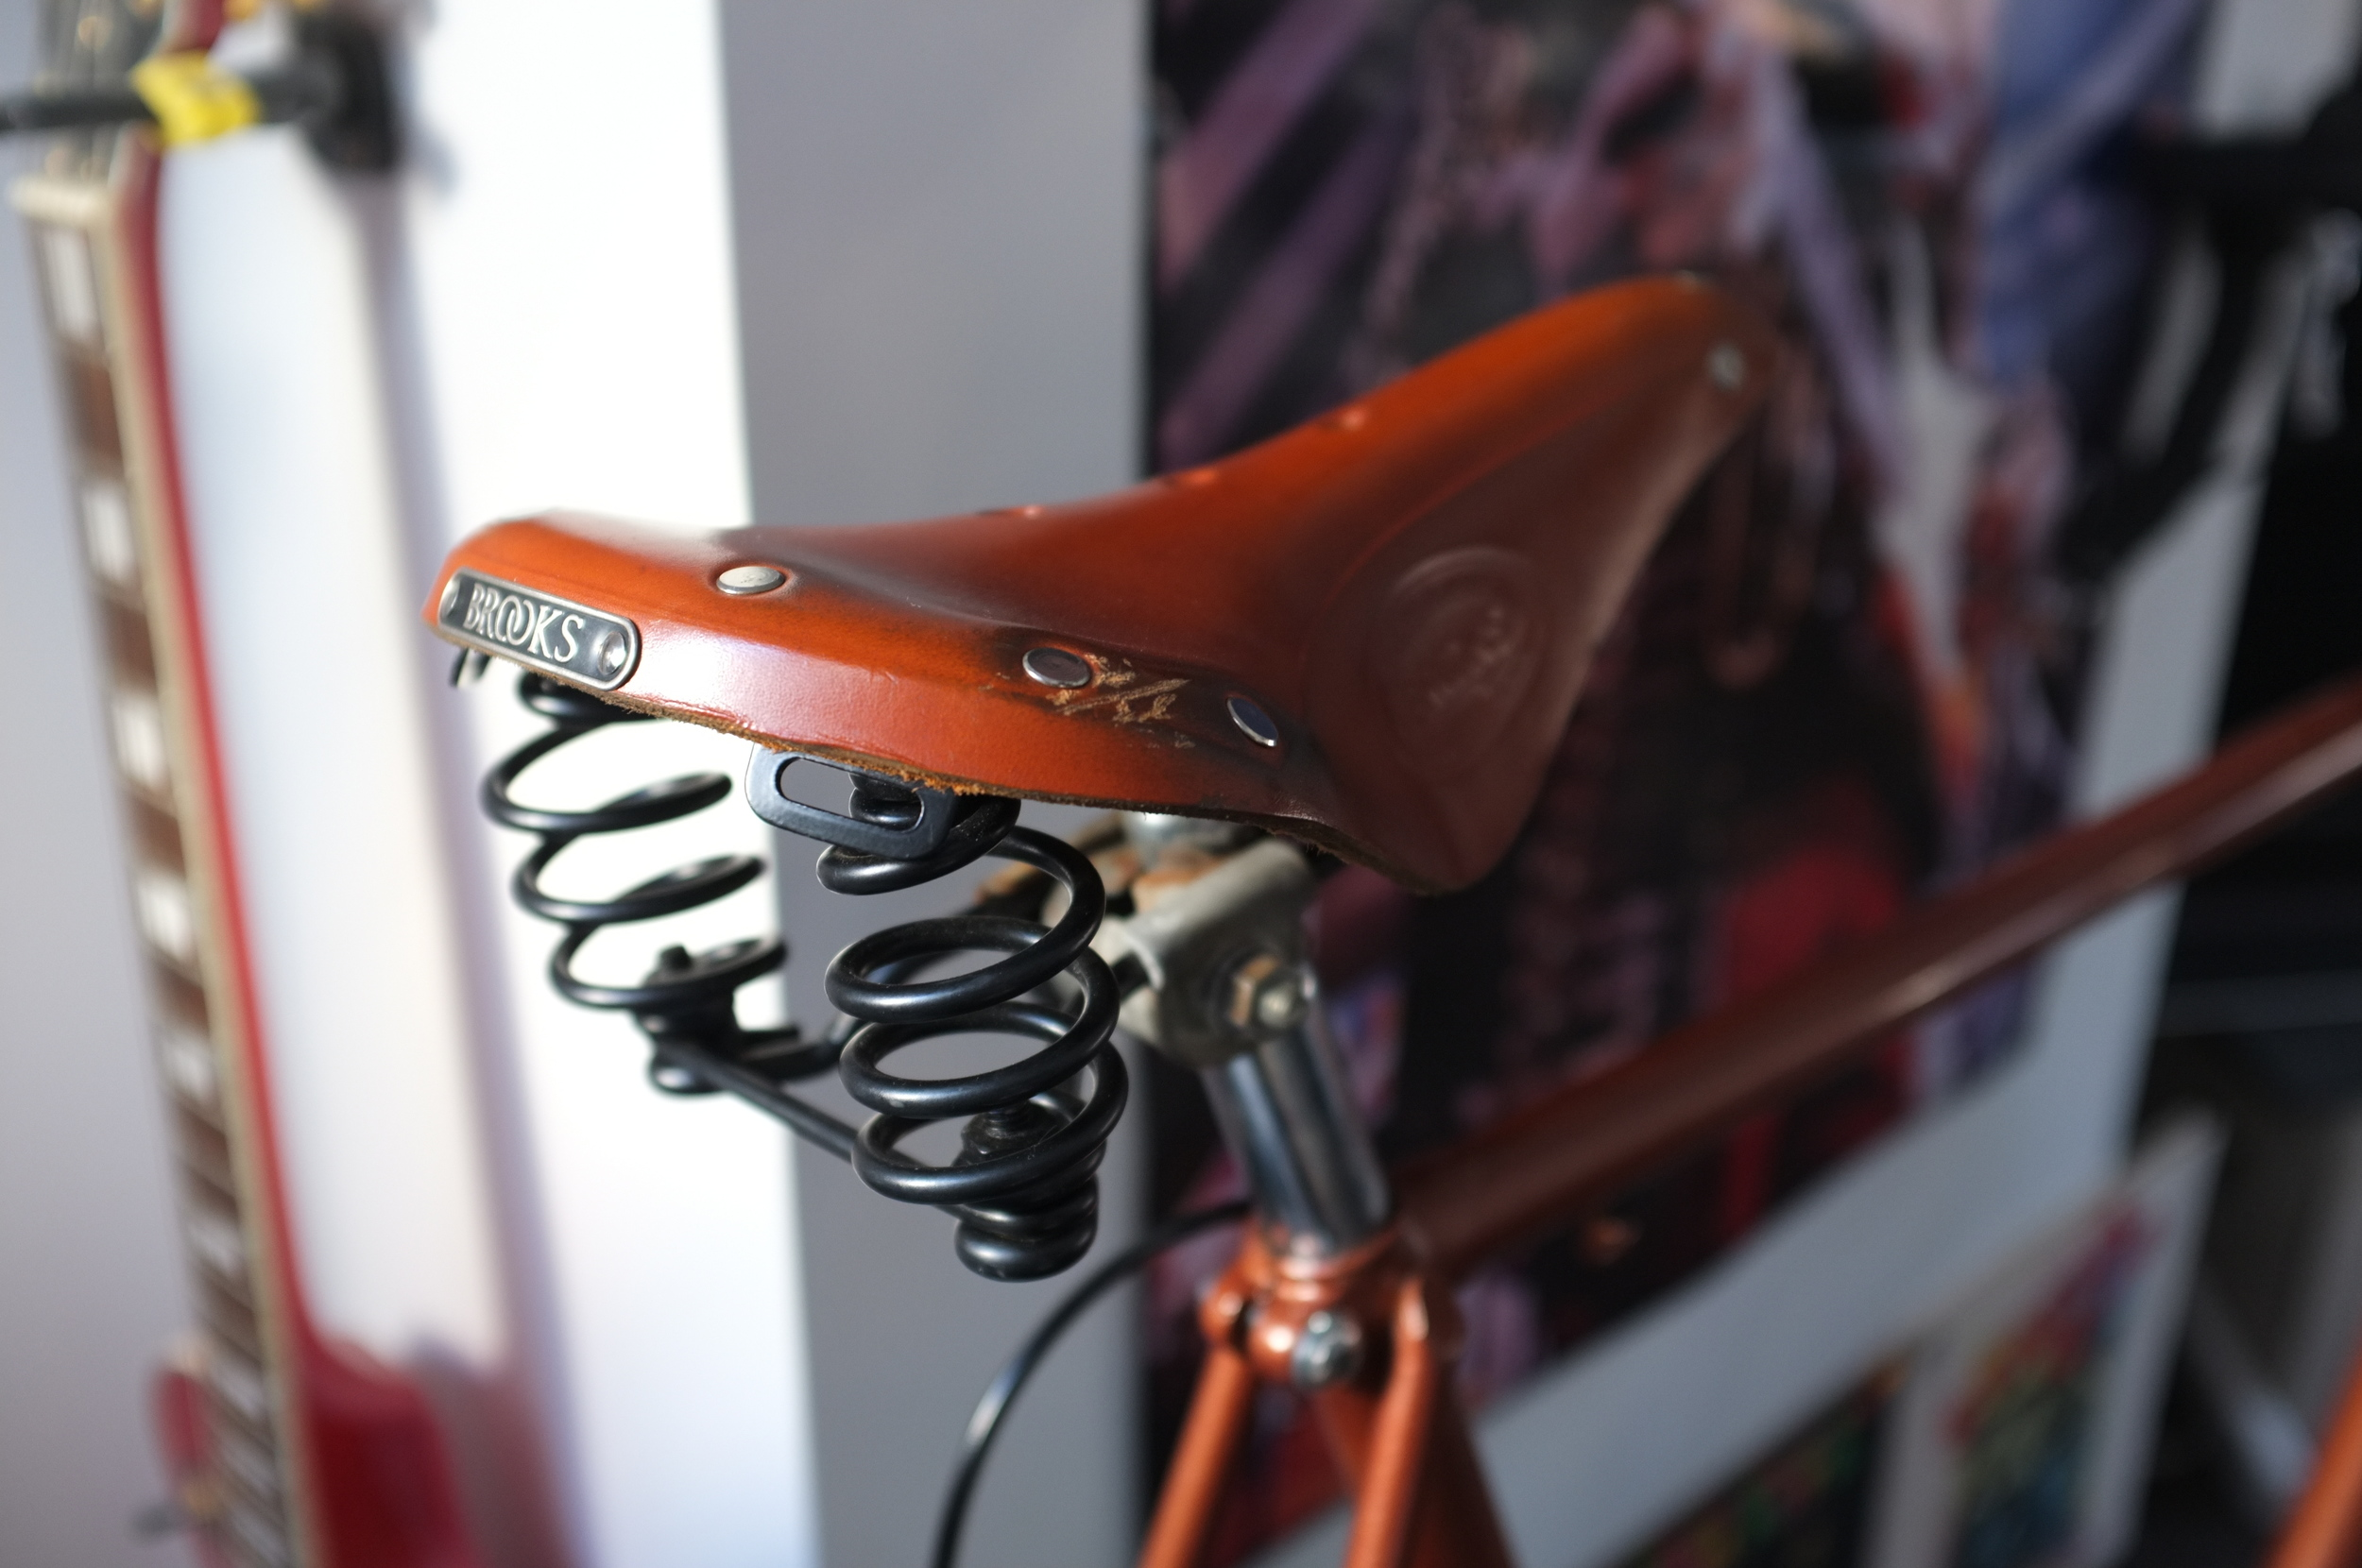 brooks, brooks saddle, brooks flyer, brooks b17, cycle gear, review, blog, custom, bicycle, bike, canon, canon 6d, cycle touring, bikepacking